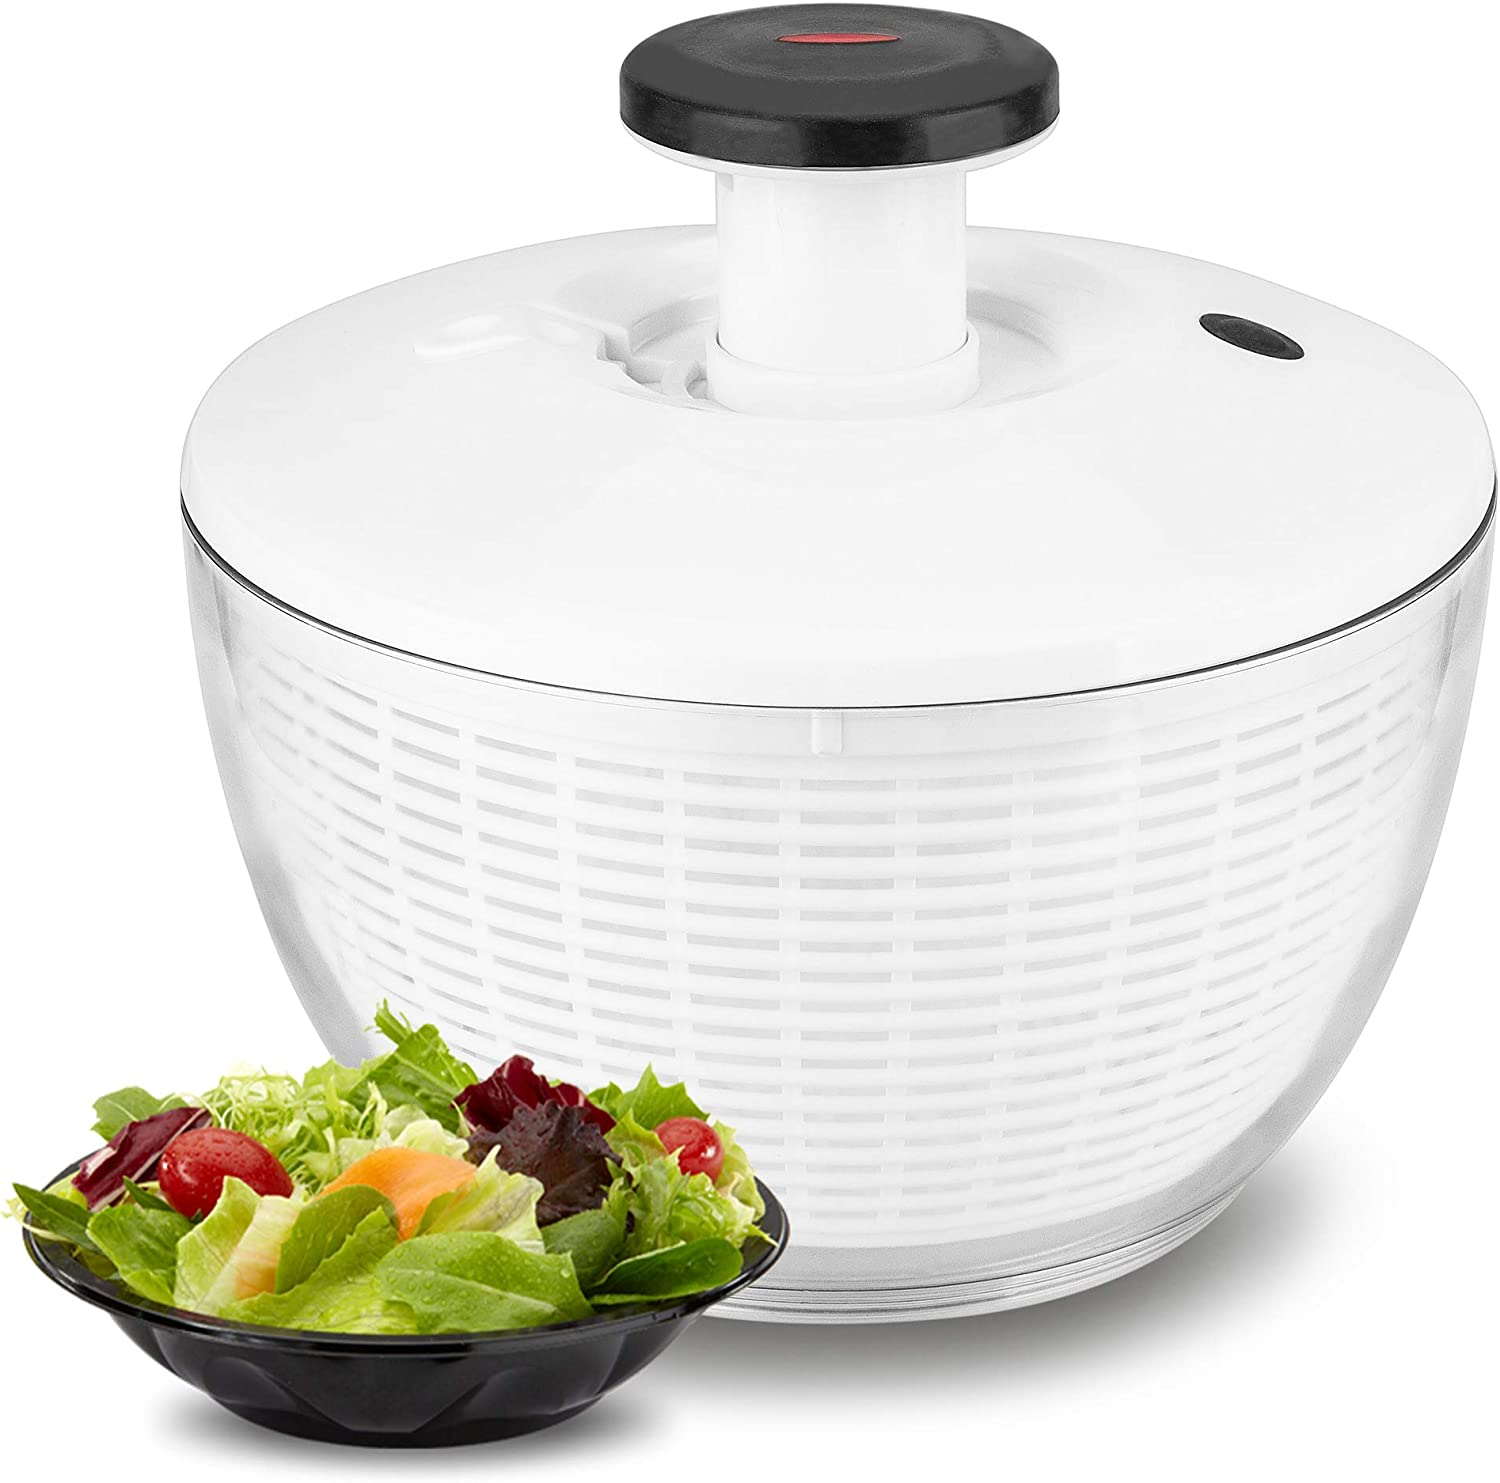 Salad Spinner, ENLOY Large 6.2 Quart Fruits and Vegetables Washer, One-Hand Pump Operation Dryer with Bowl, Compact Storage Strainer Perfect for Washing & Drying Leafy Vegetables